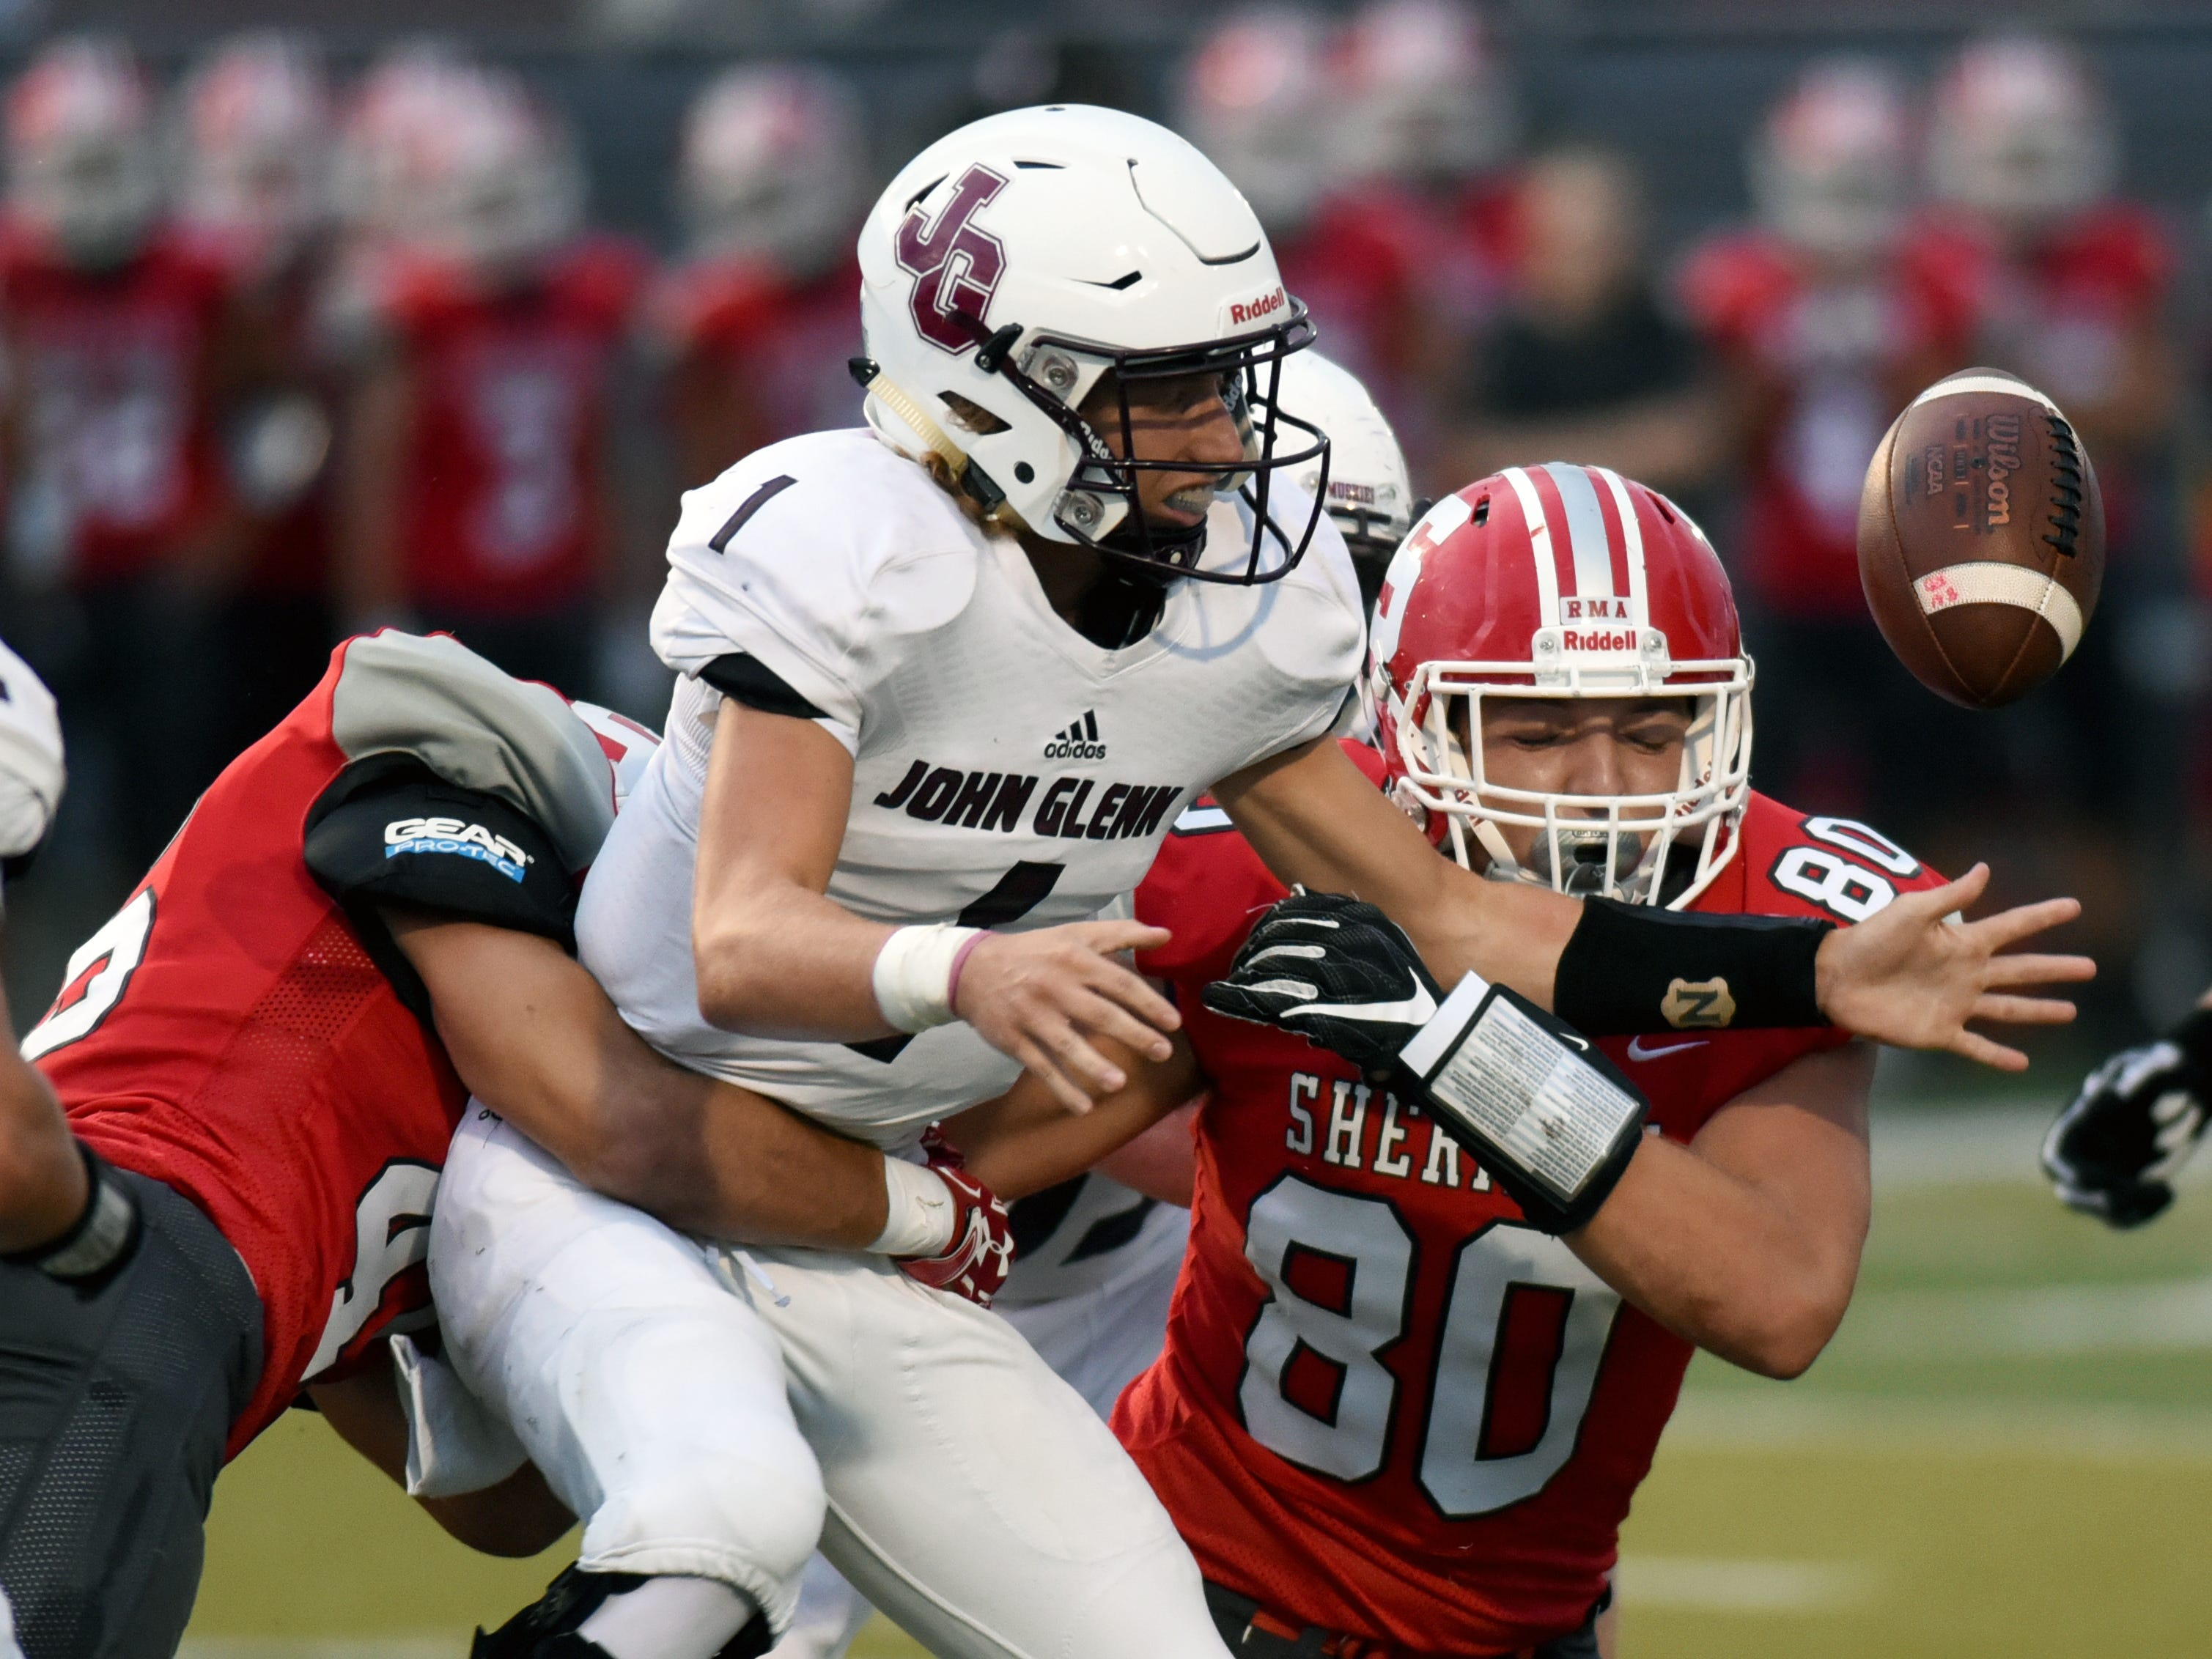 Evan Williams loses the ball after being sacked by Sheridan's Chance King, left, and Adam Boyle. Sheridan won, 37-7, on Friday night at Paul Culver Jr. Stadium.